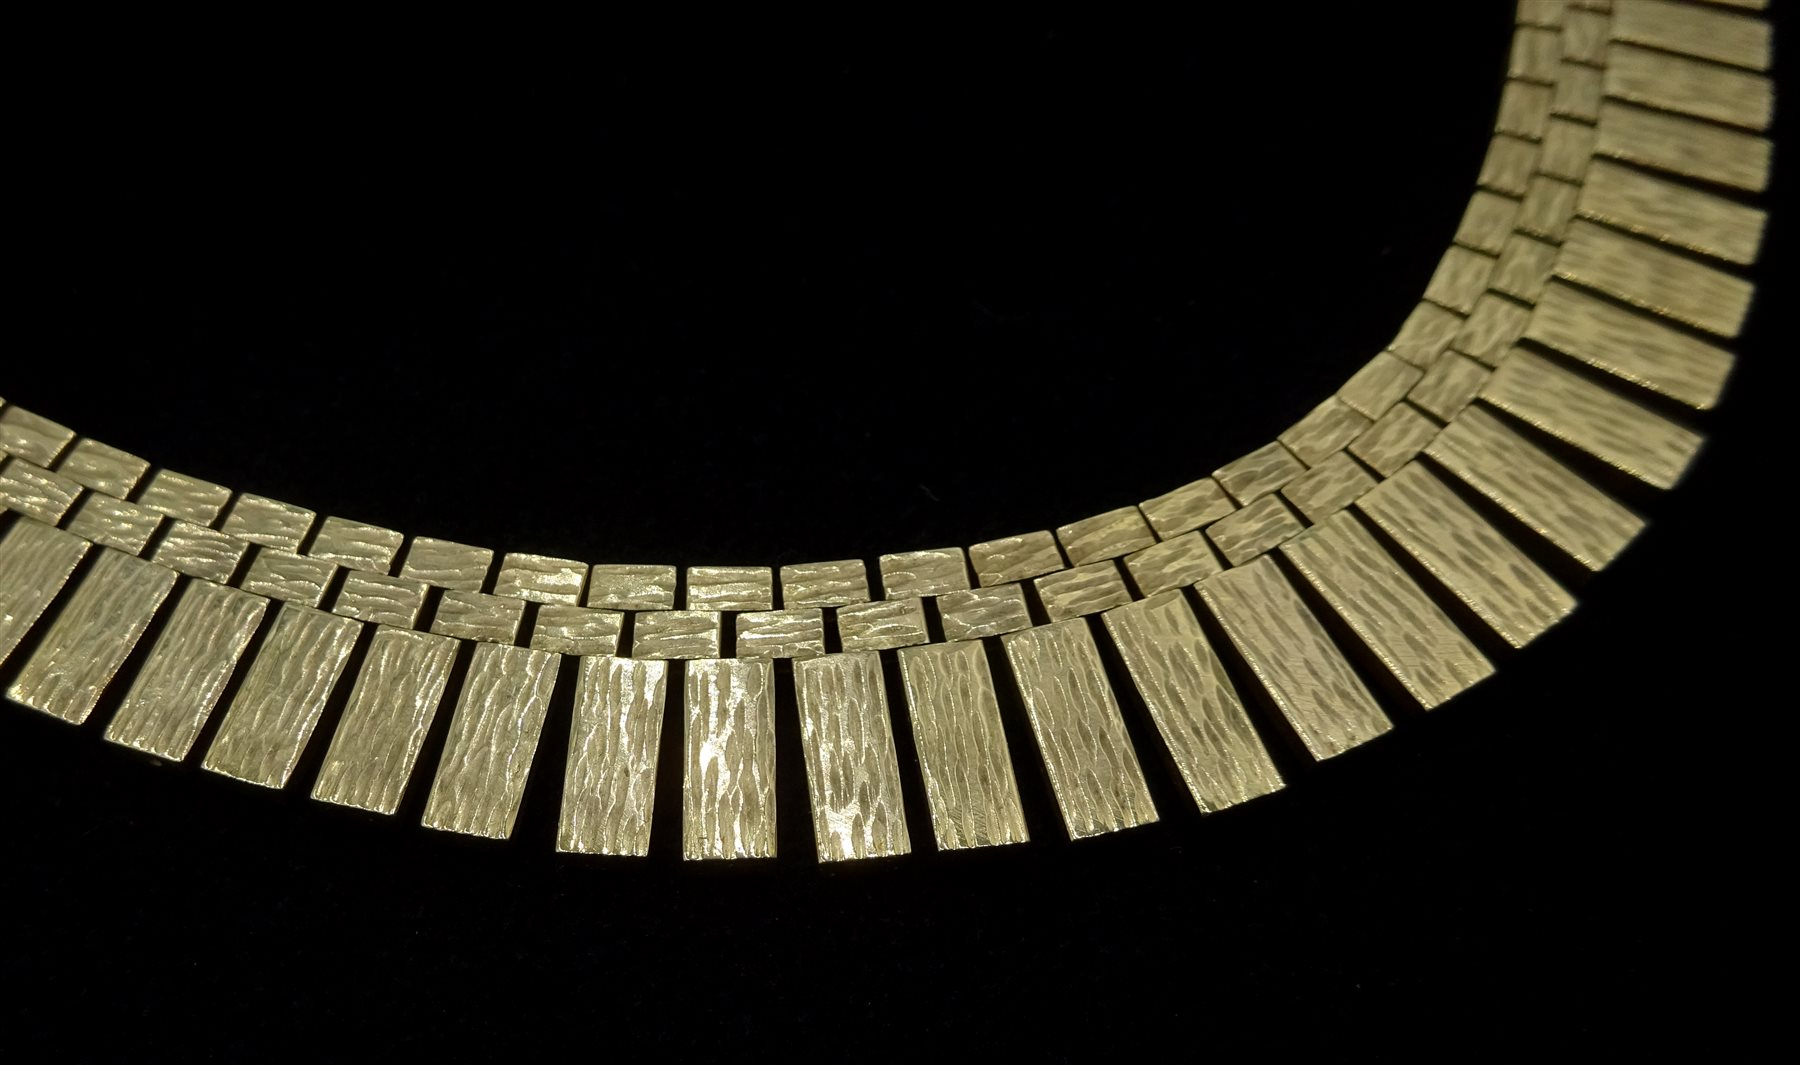 9ct gold fringe necklace, stamped 9 375, approx 66.8gm, retailed by Rusbridge Scarborough boxed - Image 2 of 3